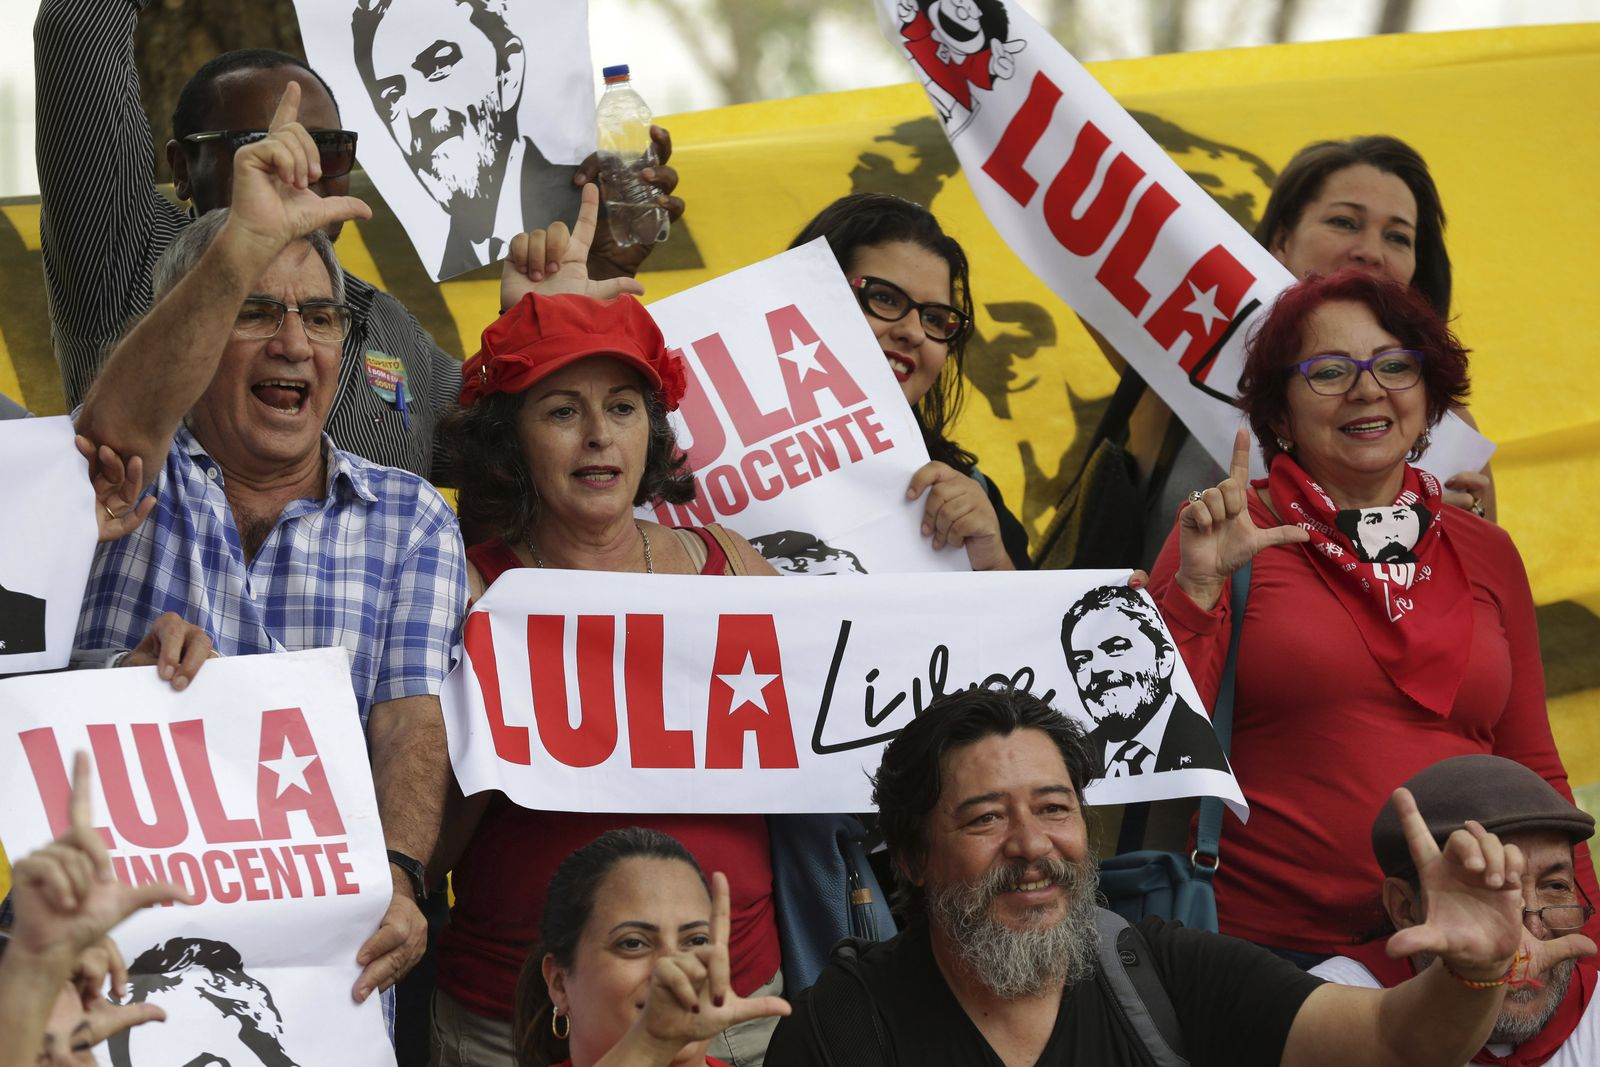 ADDITION Brazil Lula Judgment